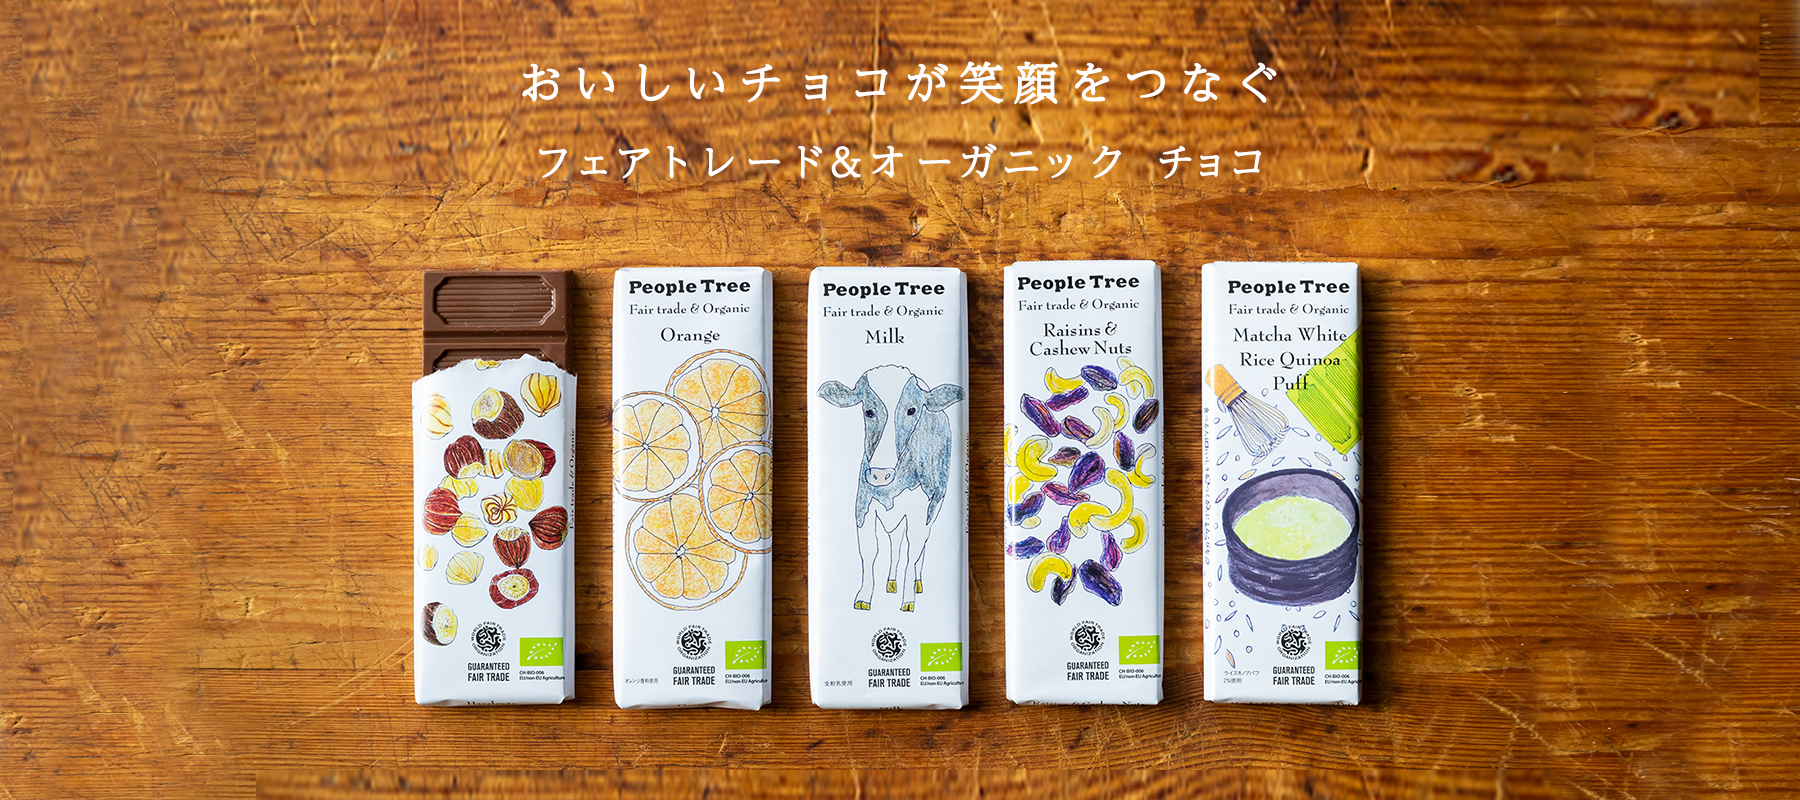 People Treeのフェアトレードチョコレート